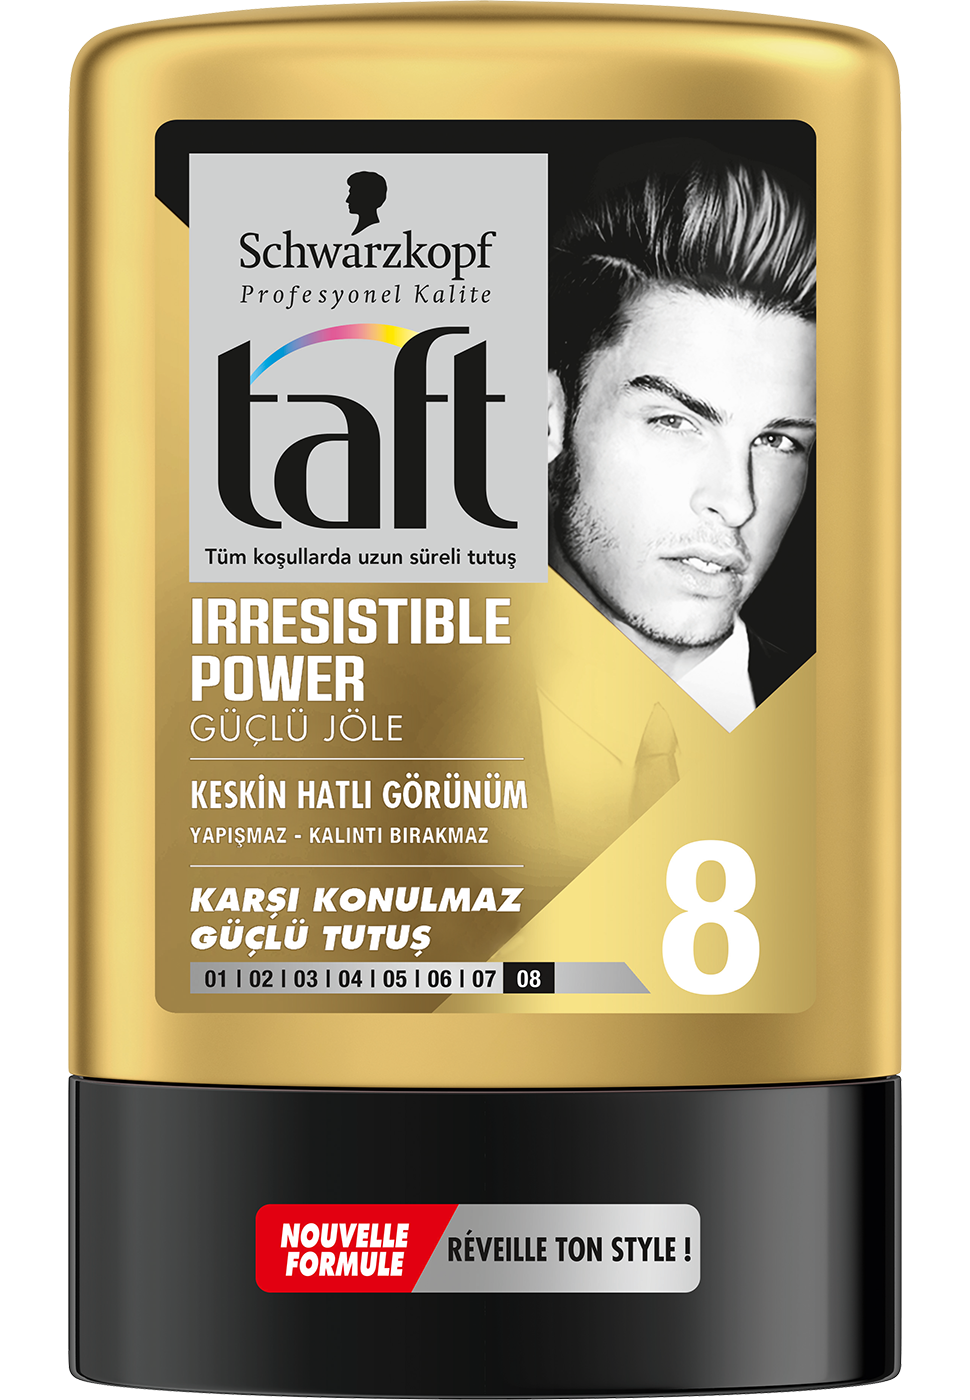 TR_Taft_Irresistable_Power_Jole